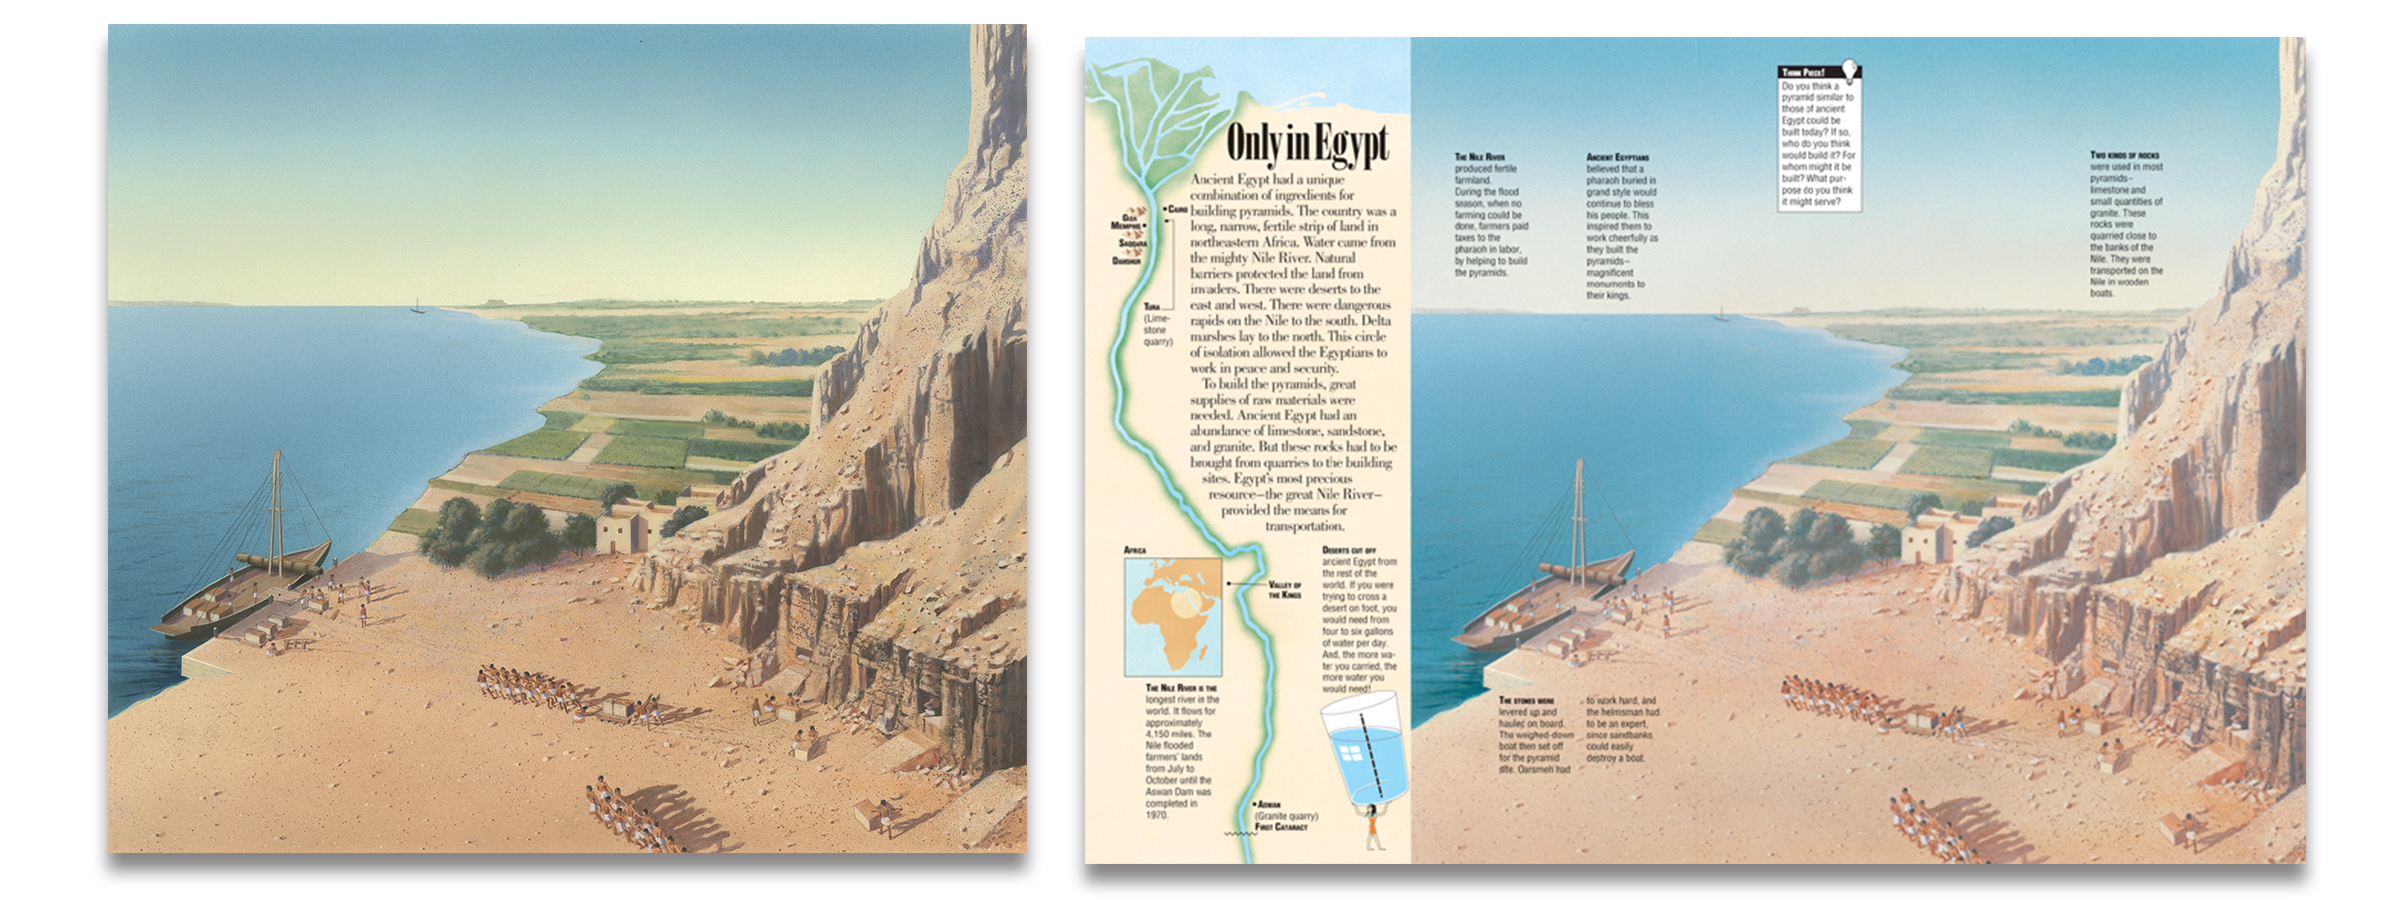 Rob Wood's illustration from Kids Discover Pyramids, before and after editorial design.